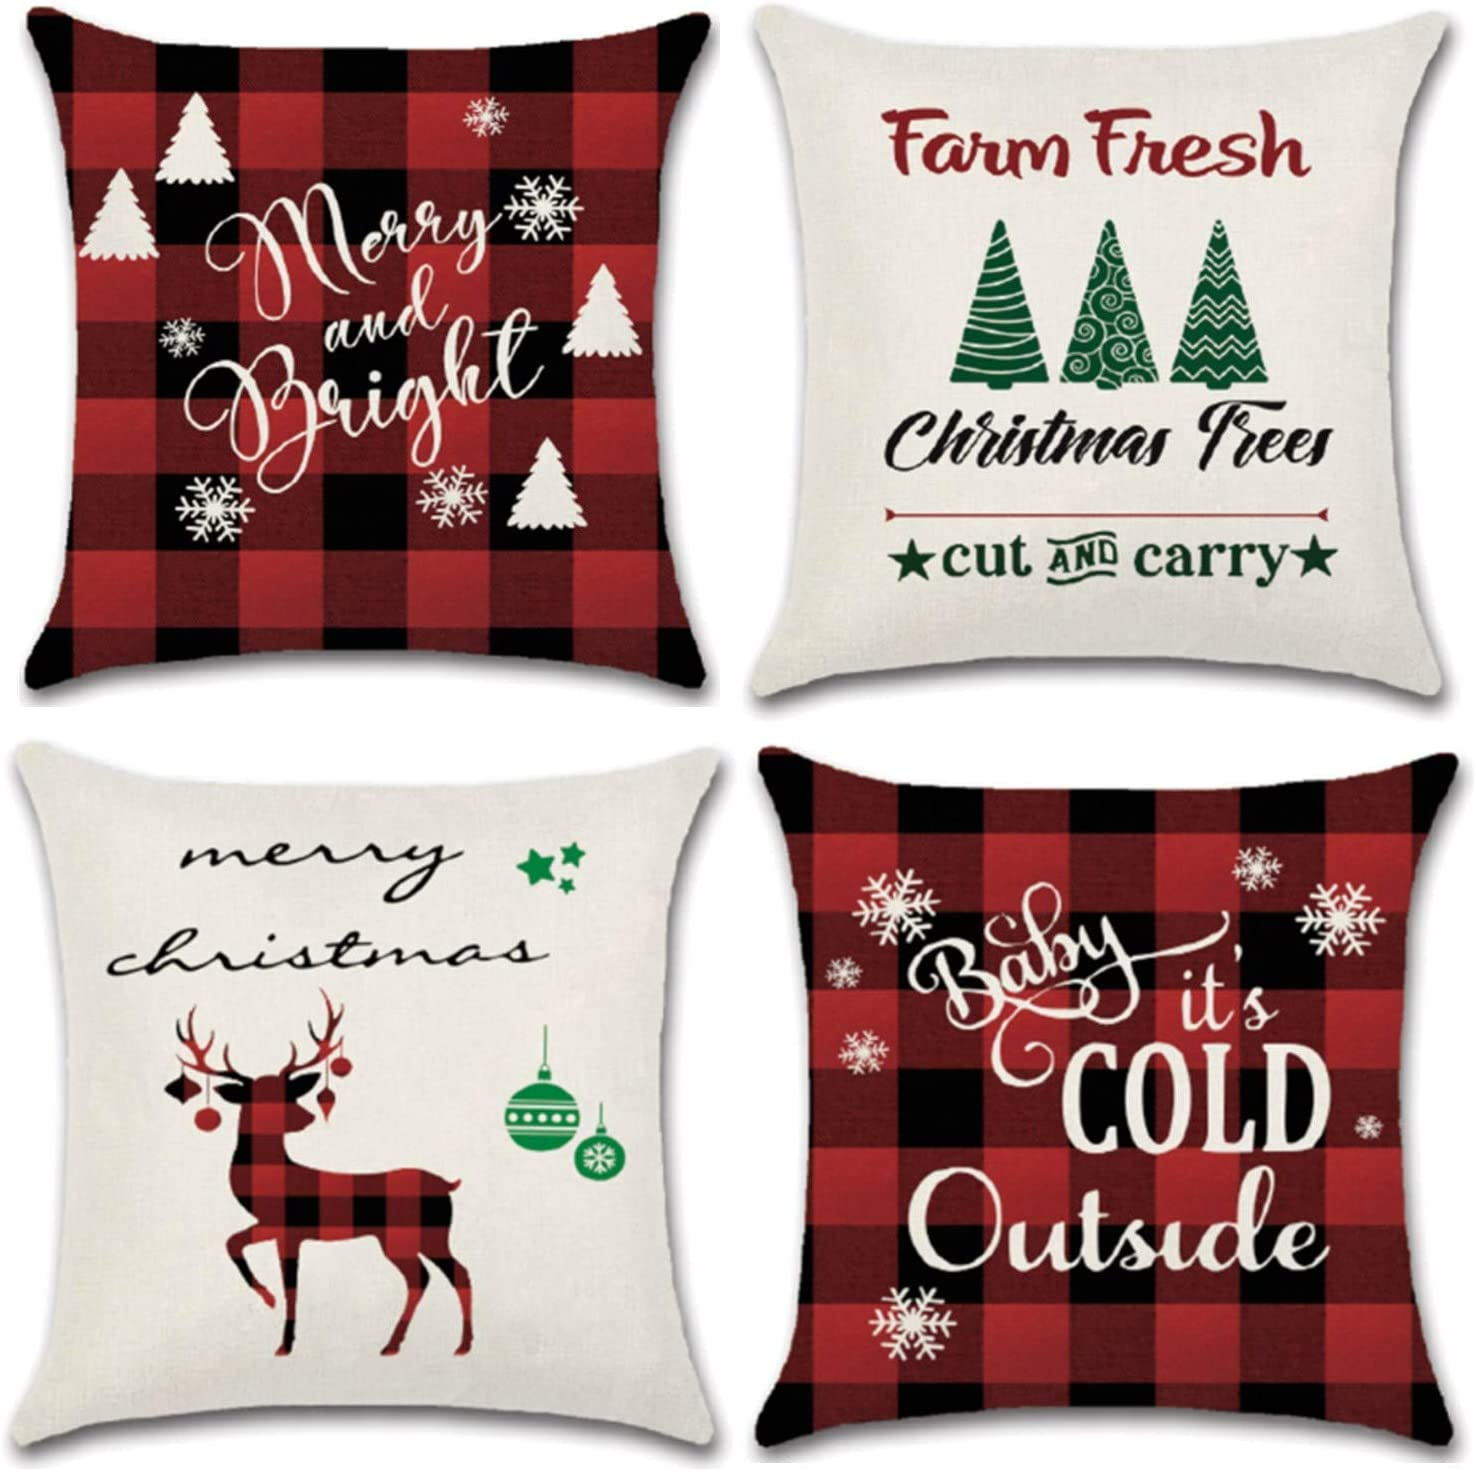 YHmall 4 Pcs Christmas Pillow Covers 18 x 18, Decorative Holiday Christmas Throw Pillow Covers Christmas Decor (red)